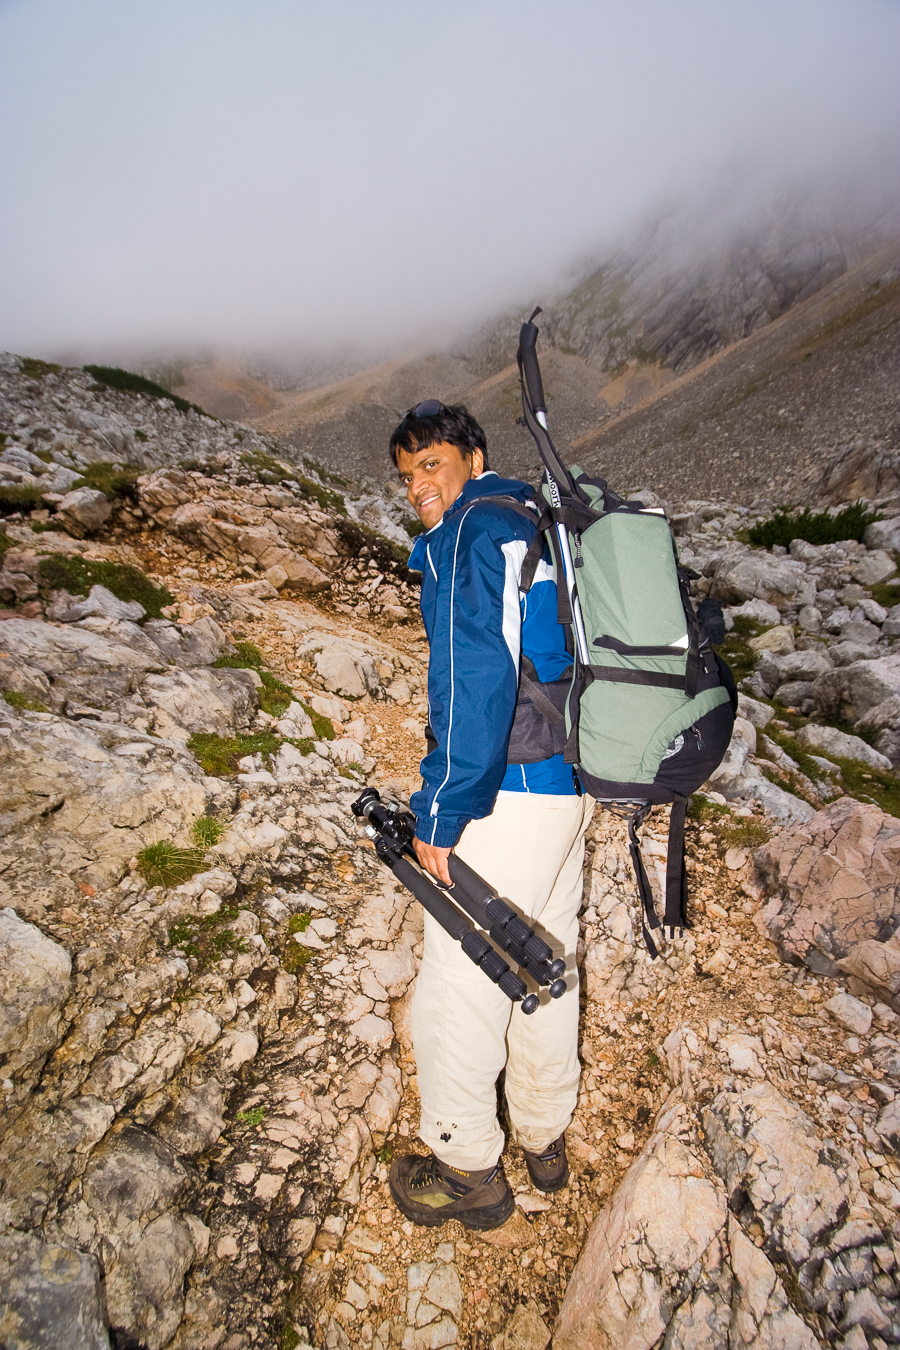 Please note that all the gear I've listed is bought, tried and tested by myself. I will only recommend what I think works in the mountains or back-country. This is just to make life easy in the mountains. This above photo of myself, taken by  Juza  while we did the hut-to-hut hike in the Dolomites, show cases what I used to own in my late 20ies. Except the shoes (Lowa) and the tripod (Slik carbonfibre) everything is bought for a two digit sum in euros. Remember - owning all the gear but not actually being out there is kind of pointless. Just go out and buy the gear as and when you can afford it.